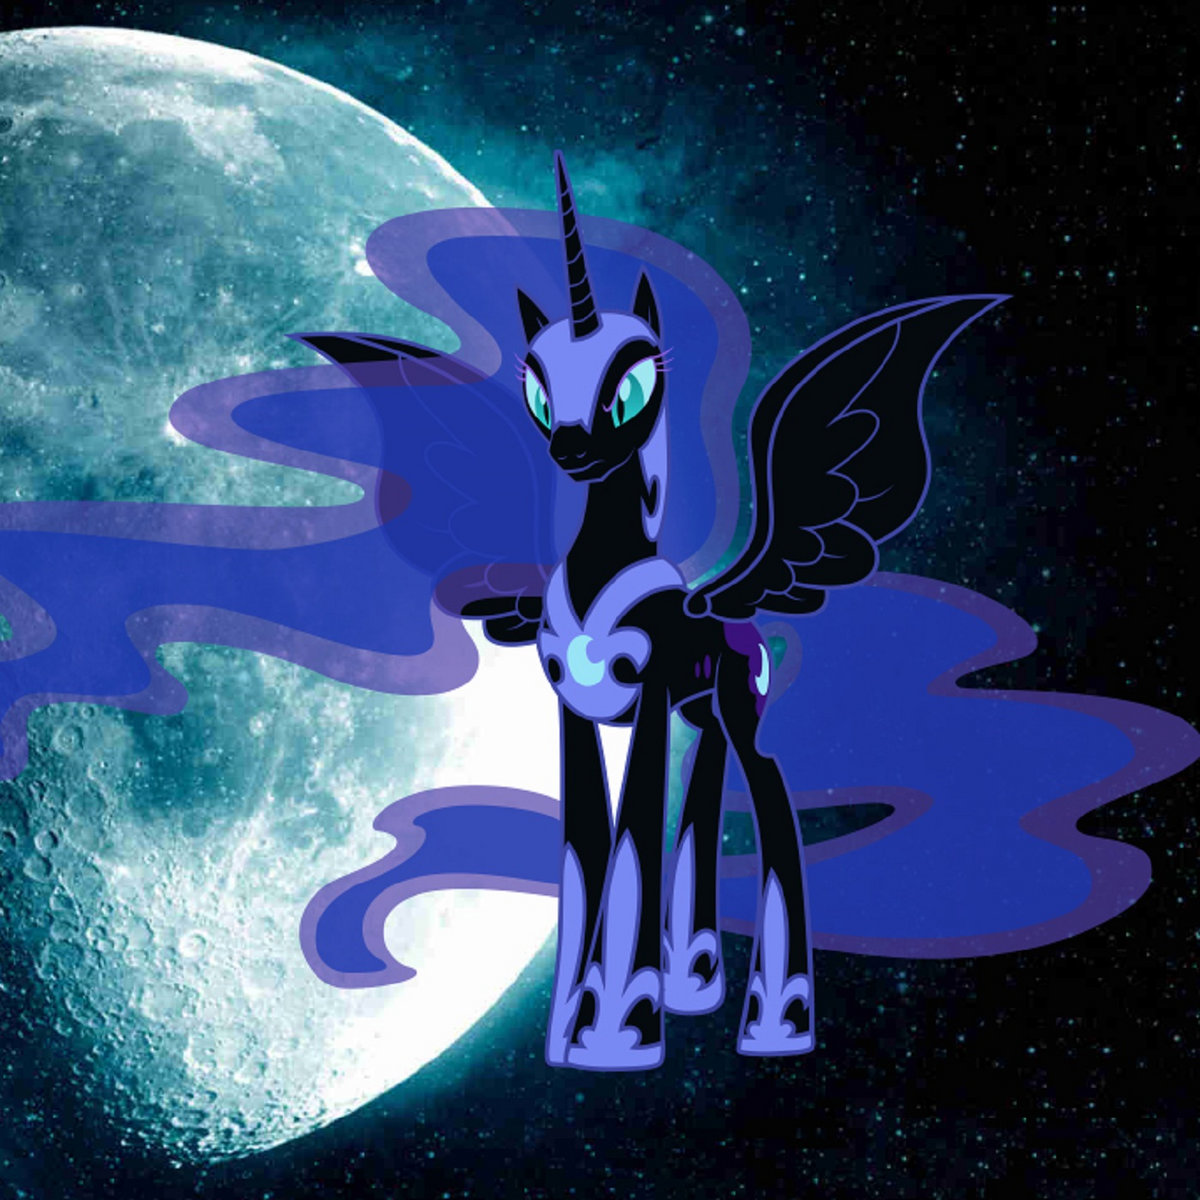 nightmare moon the lunar queen jyc row